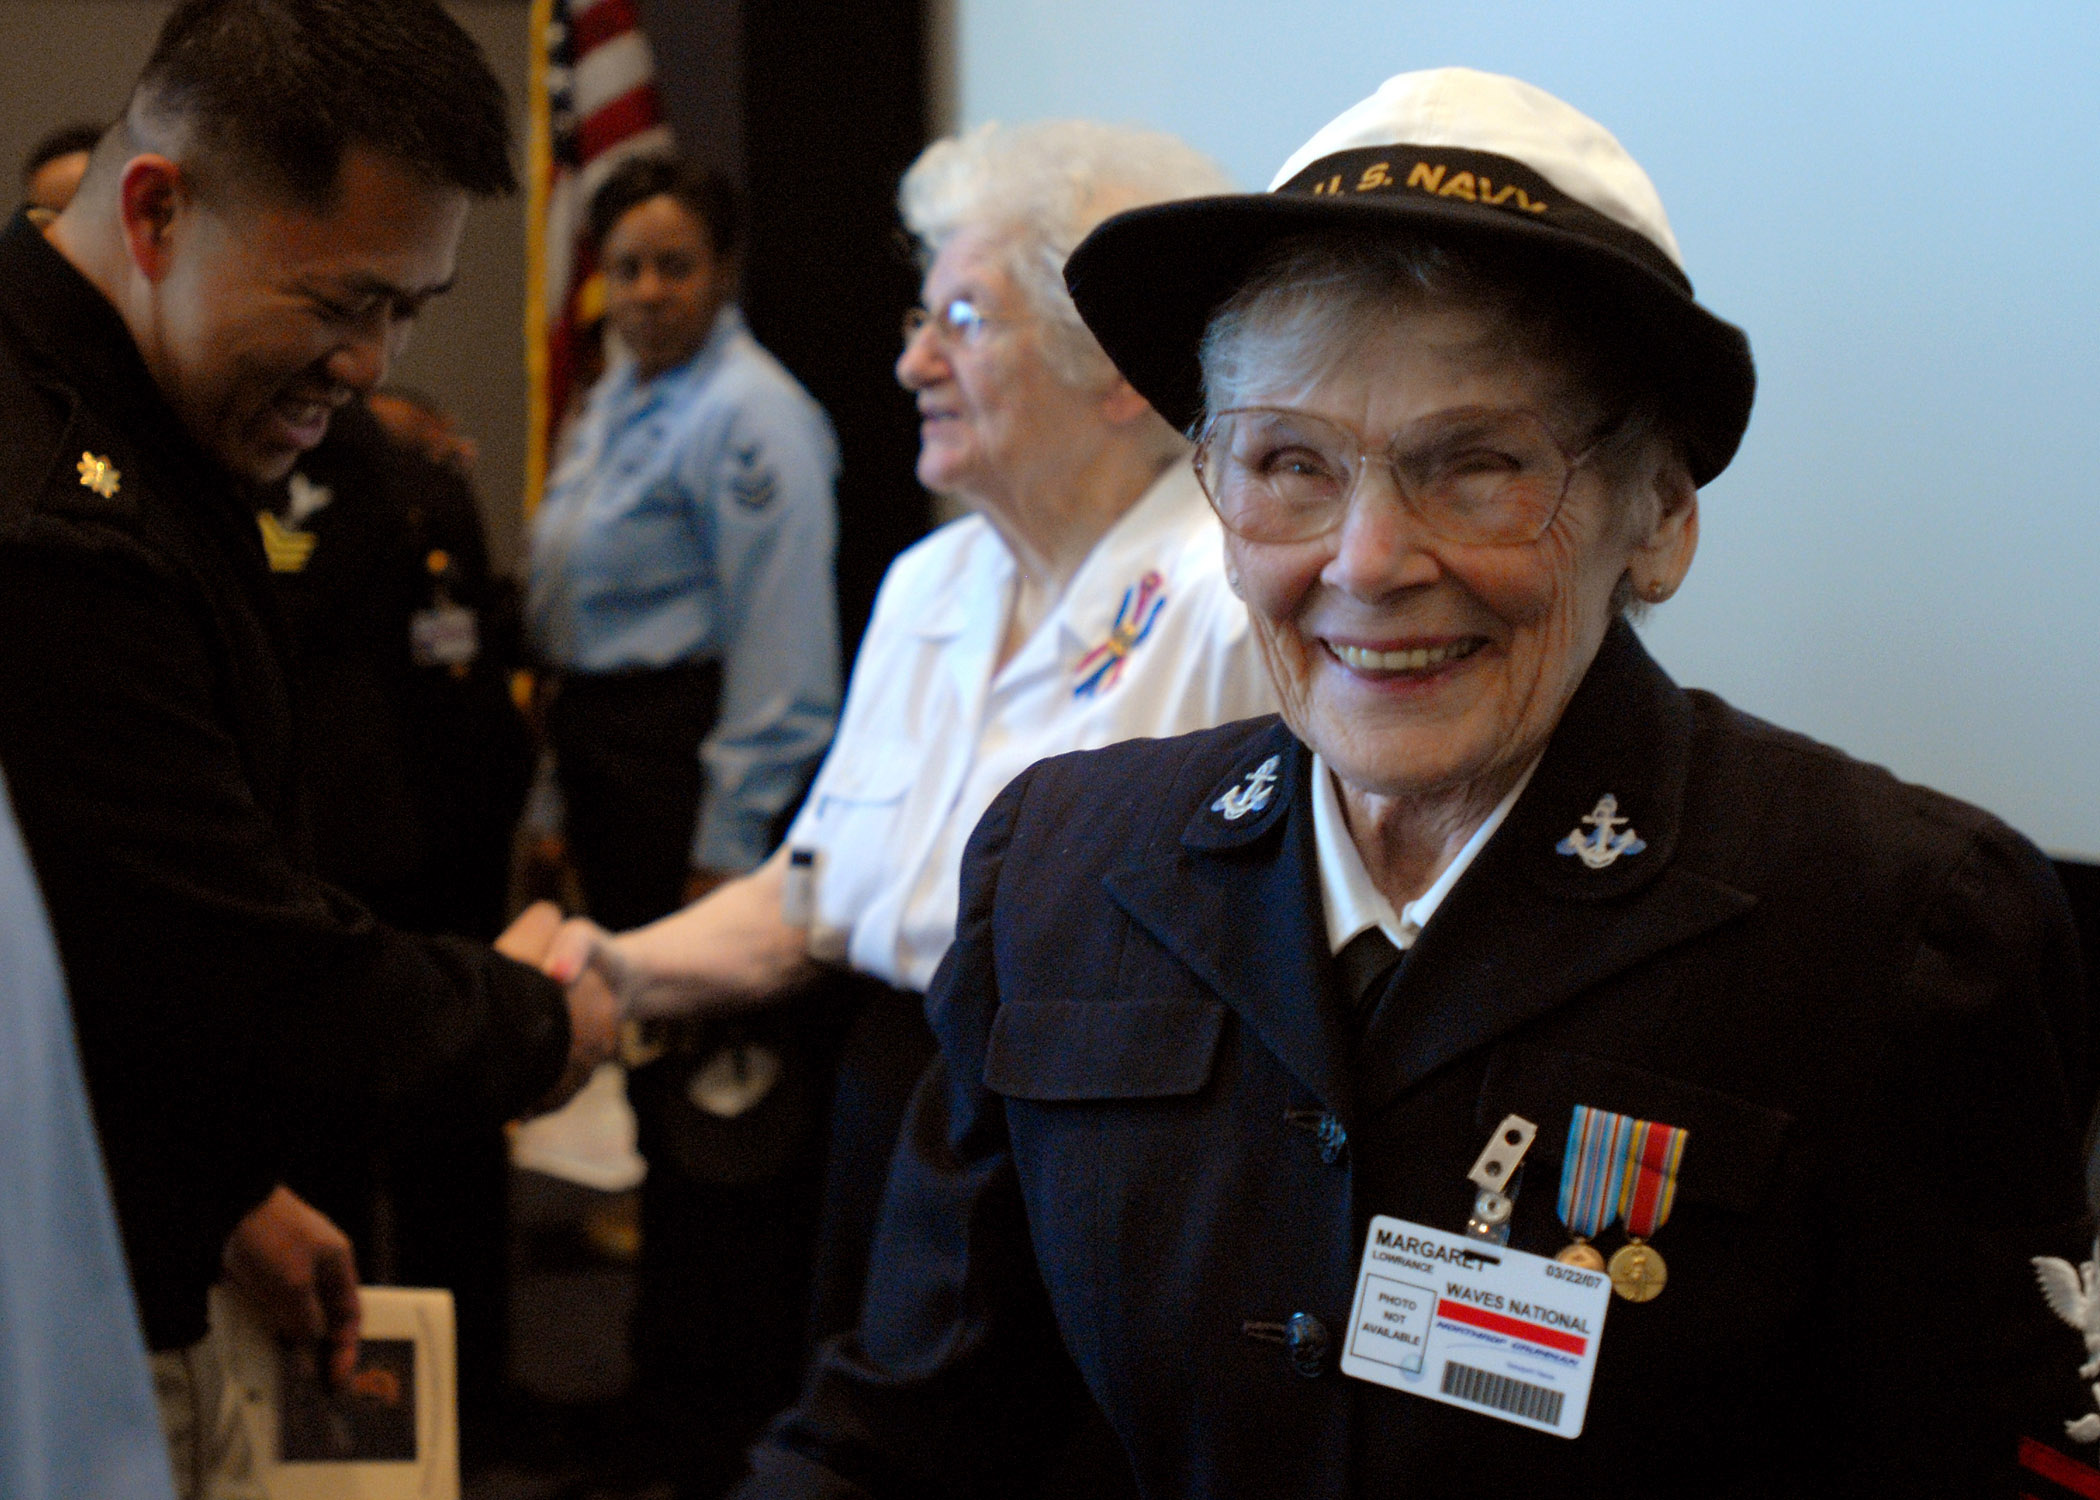 US Navy 070322-N-4528N-096 World War II veteran Margaret Maggie Lowrance greets Sailors assigned to PCU George H.W. Bush (CVN 77) after sharing her experiences as a woman in the Navy.jpg